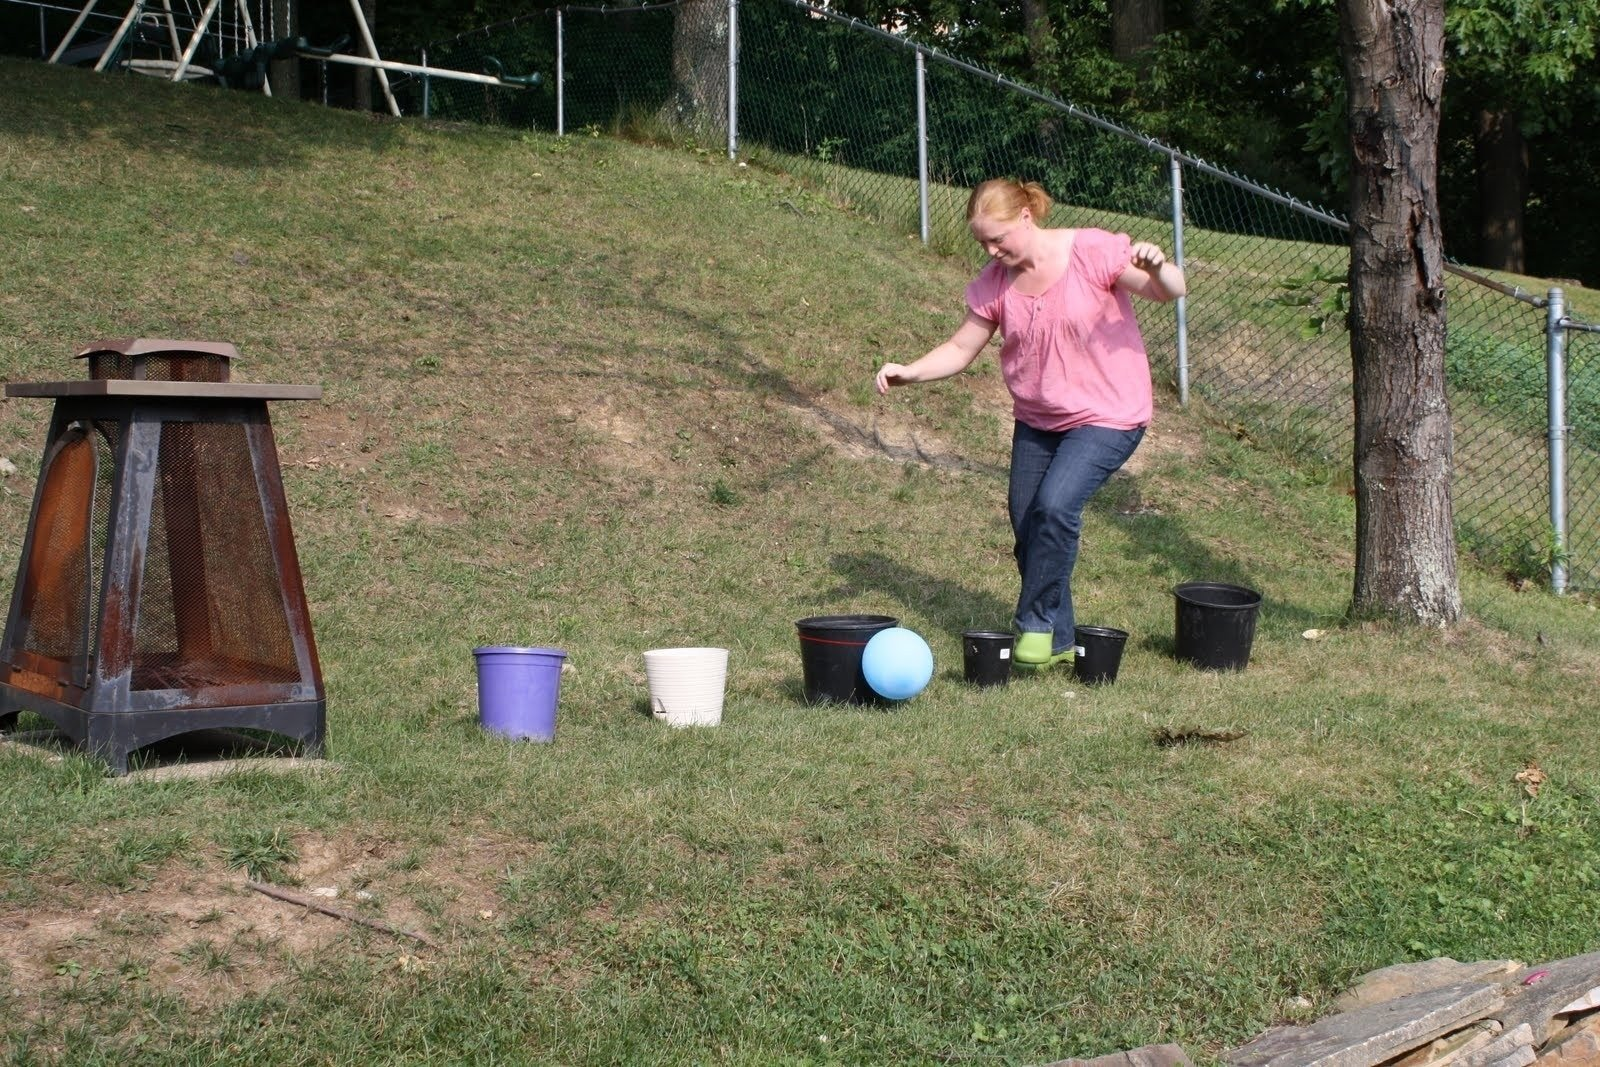 10 Perfect Obstacle Course Ideas For Adults diy american ninja warrior backyard obstacle course pictures with 2021